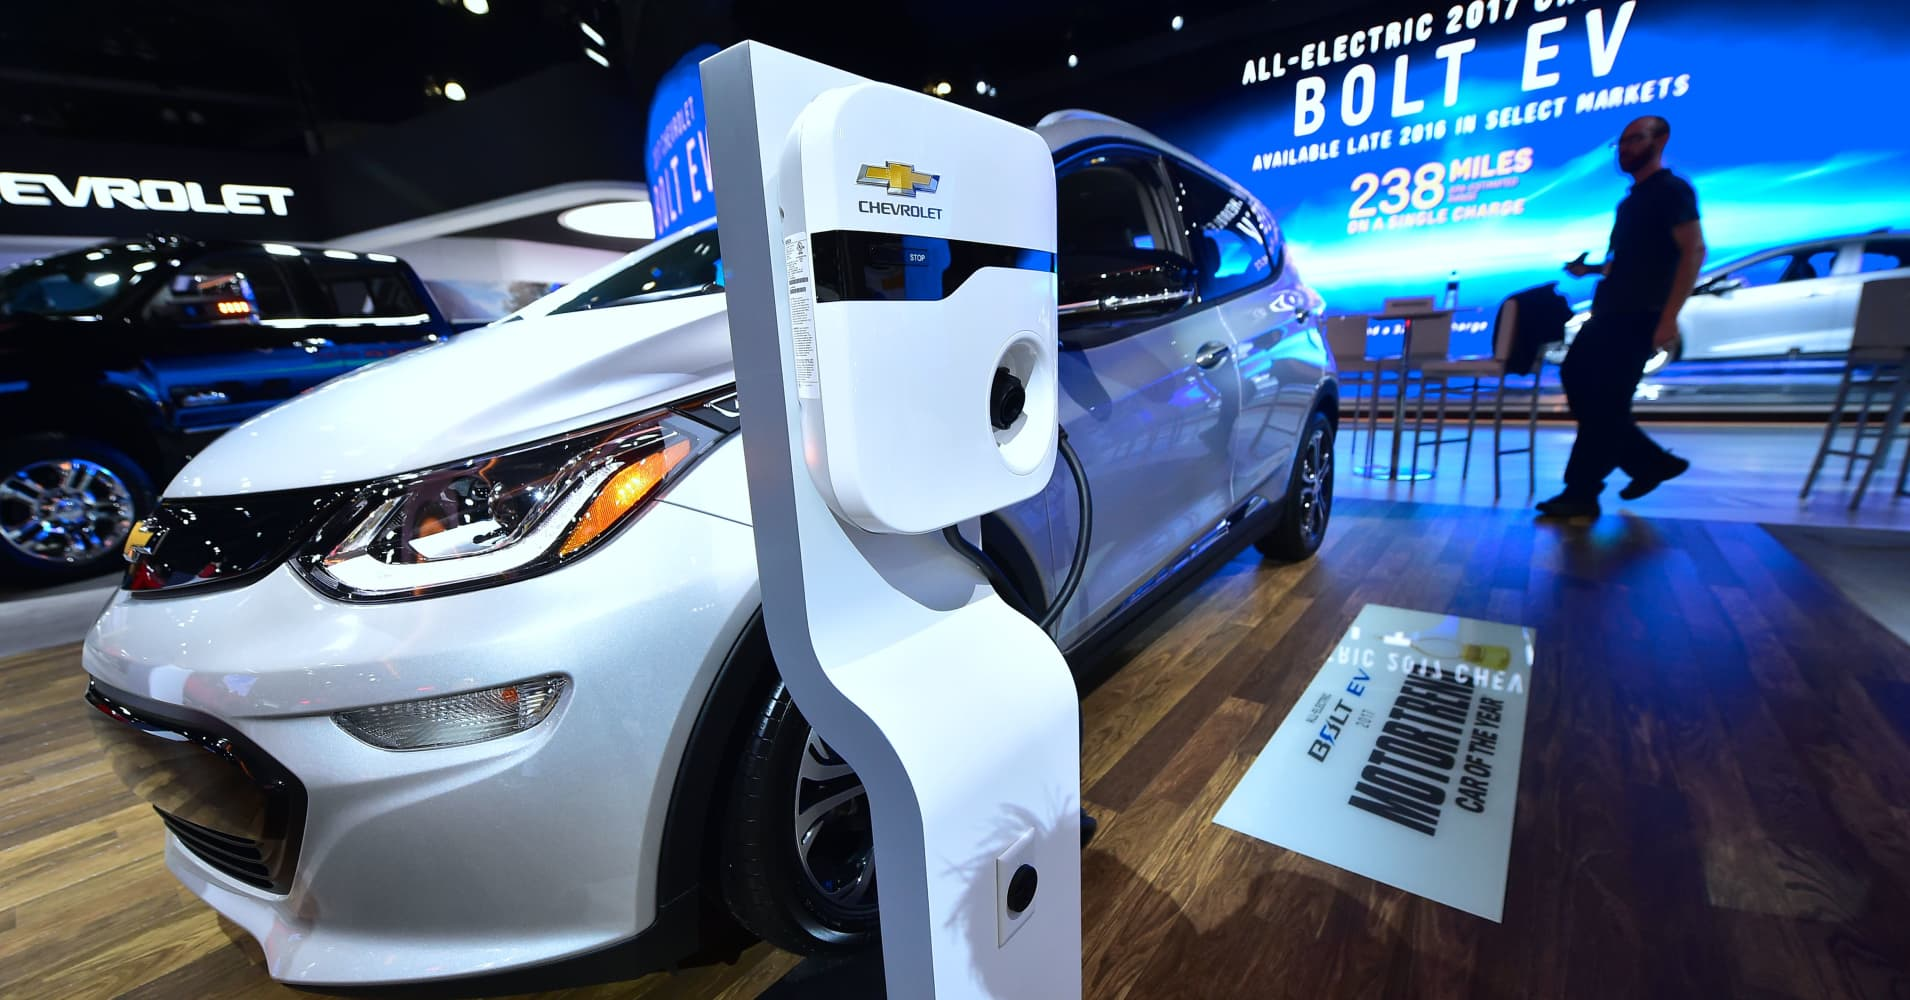 Sales of Chevy's electric car, the Bolt, tank 41 percent during the third quarter